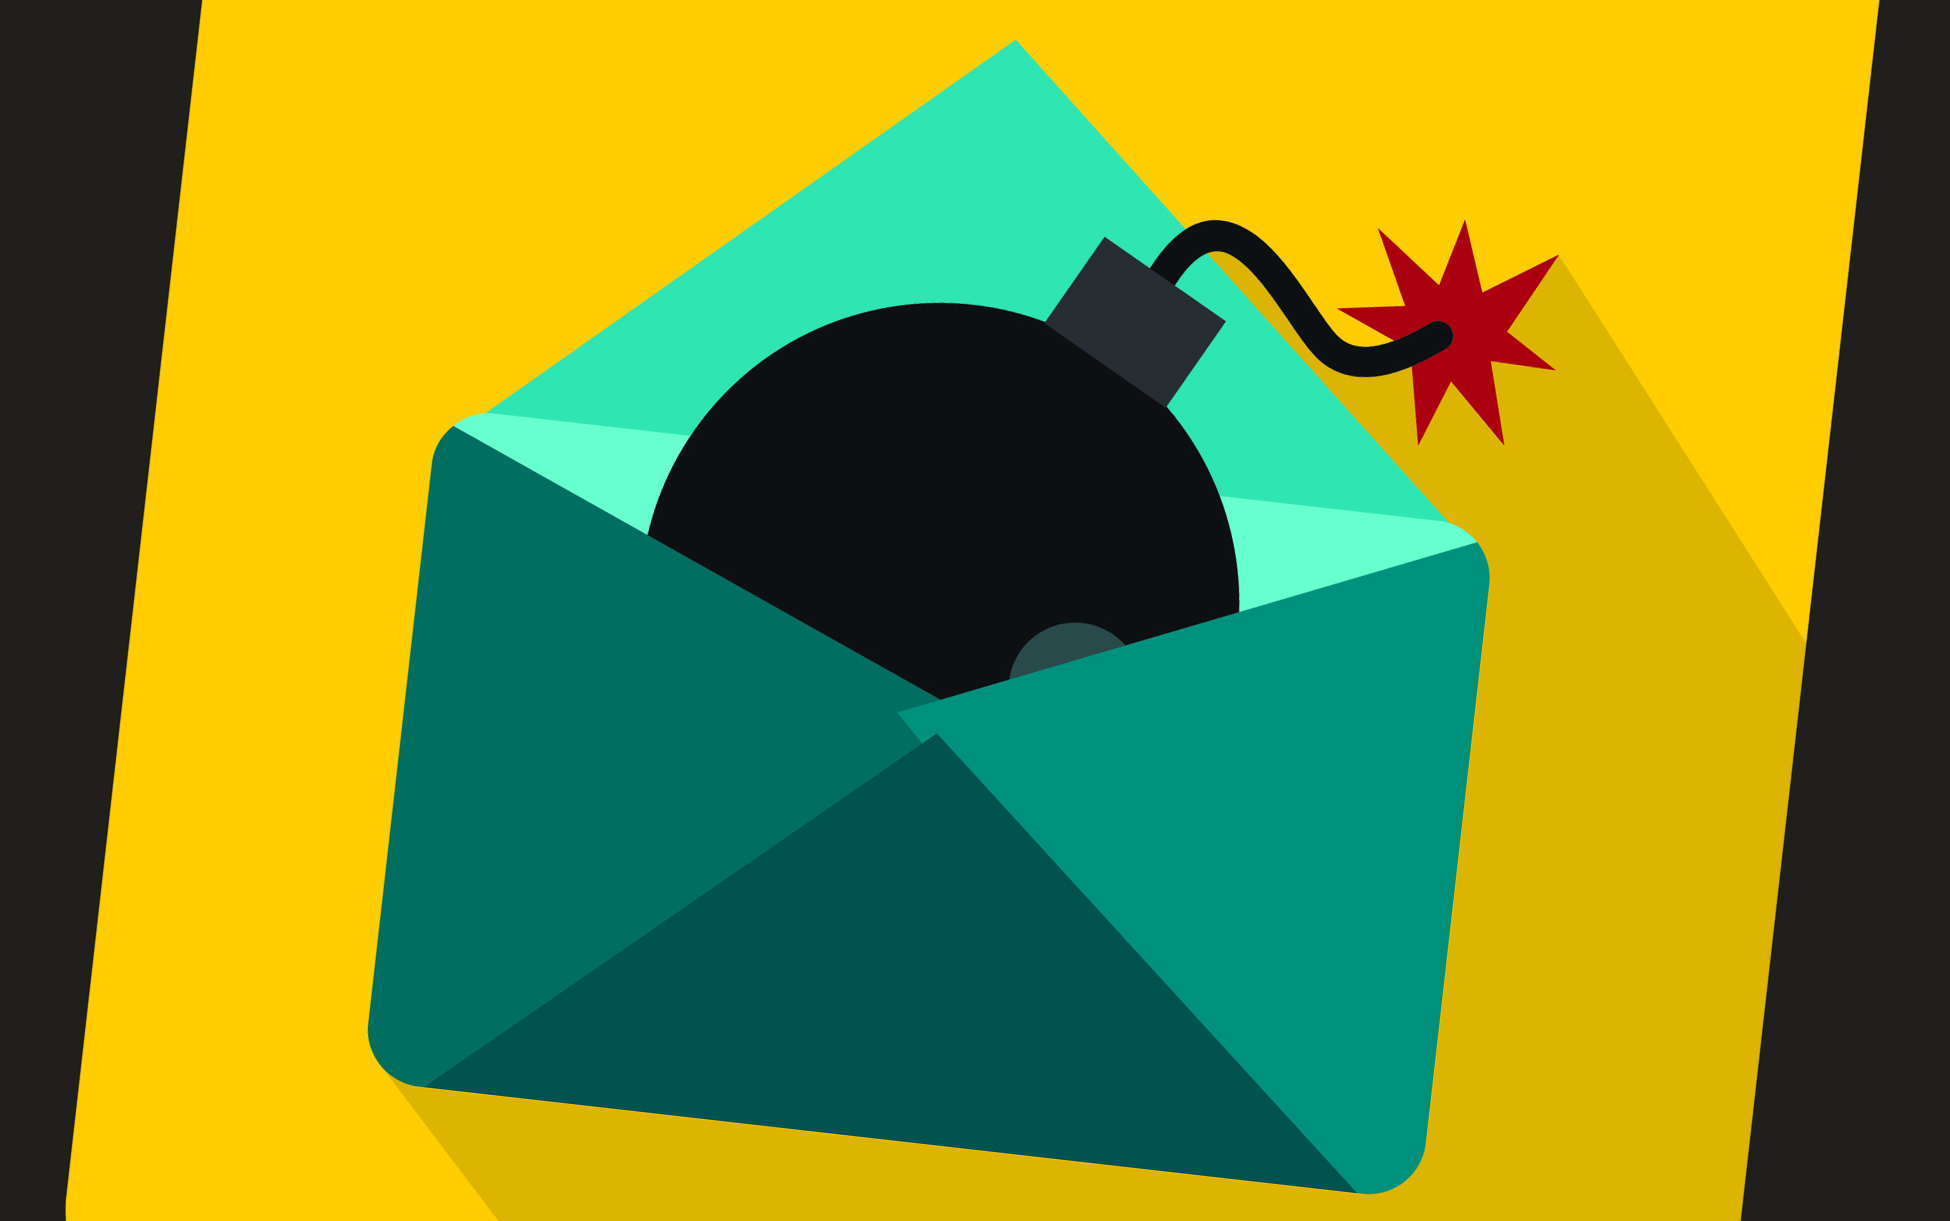 1-email-a